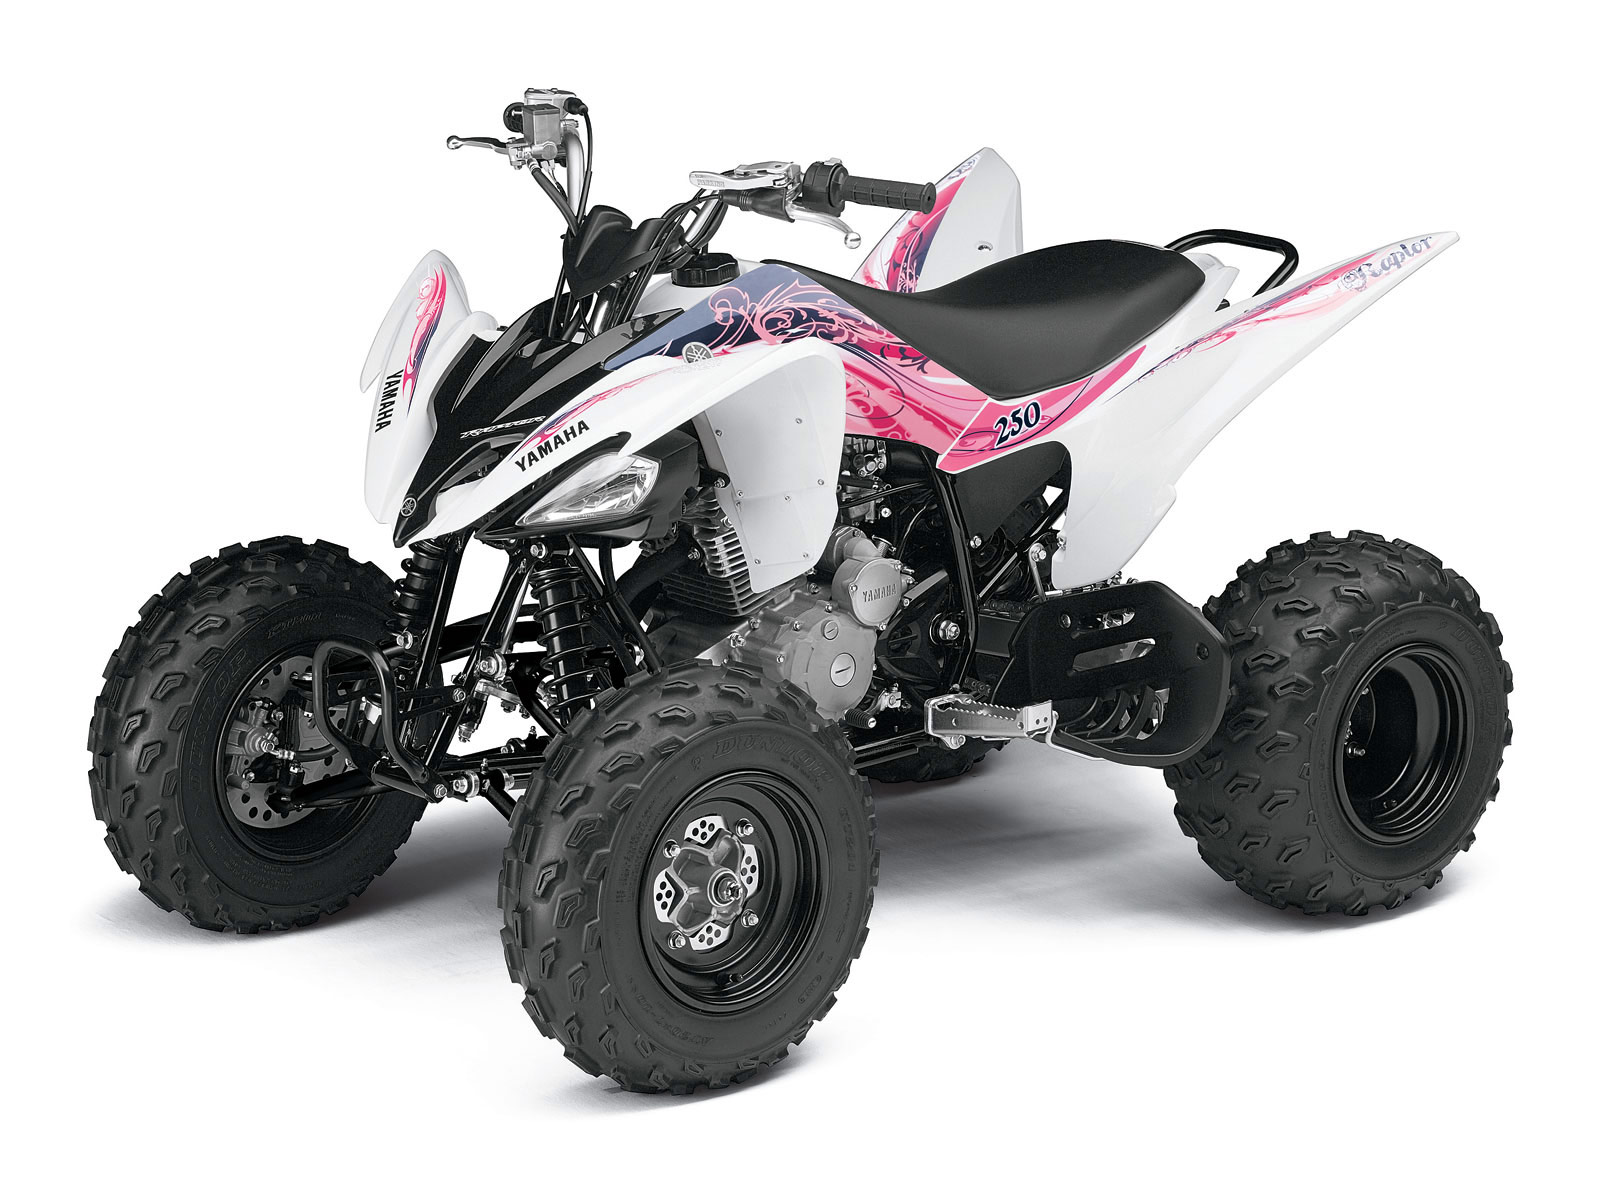 yamaha pictures 2011 raptor 250 atv super moto and sexy girls. Black Bedroom Furniture Sets. Home Design Ideas